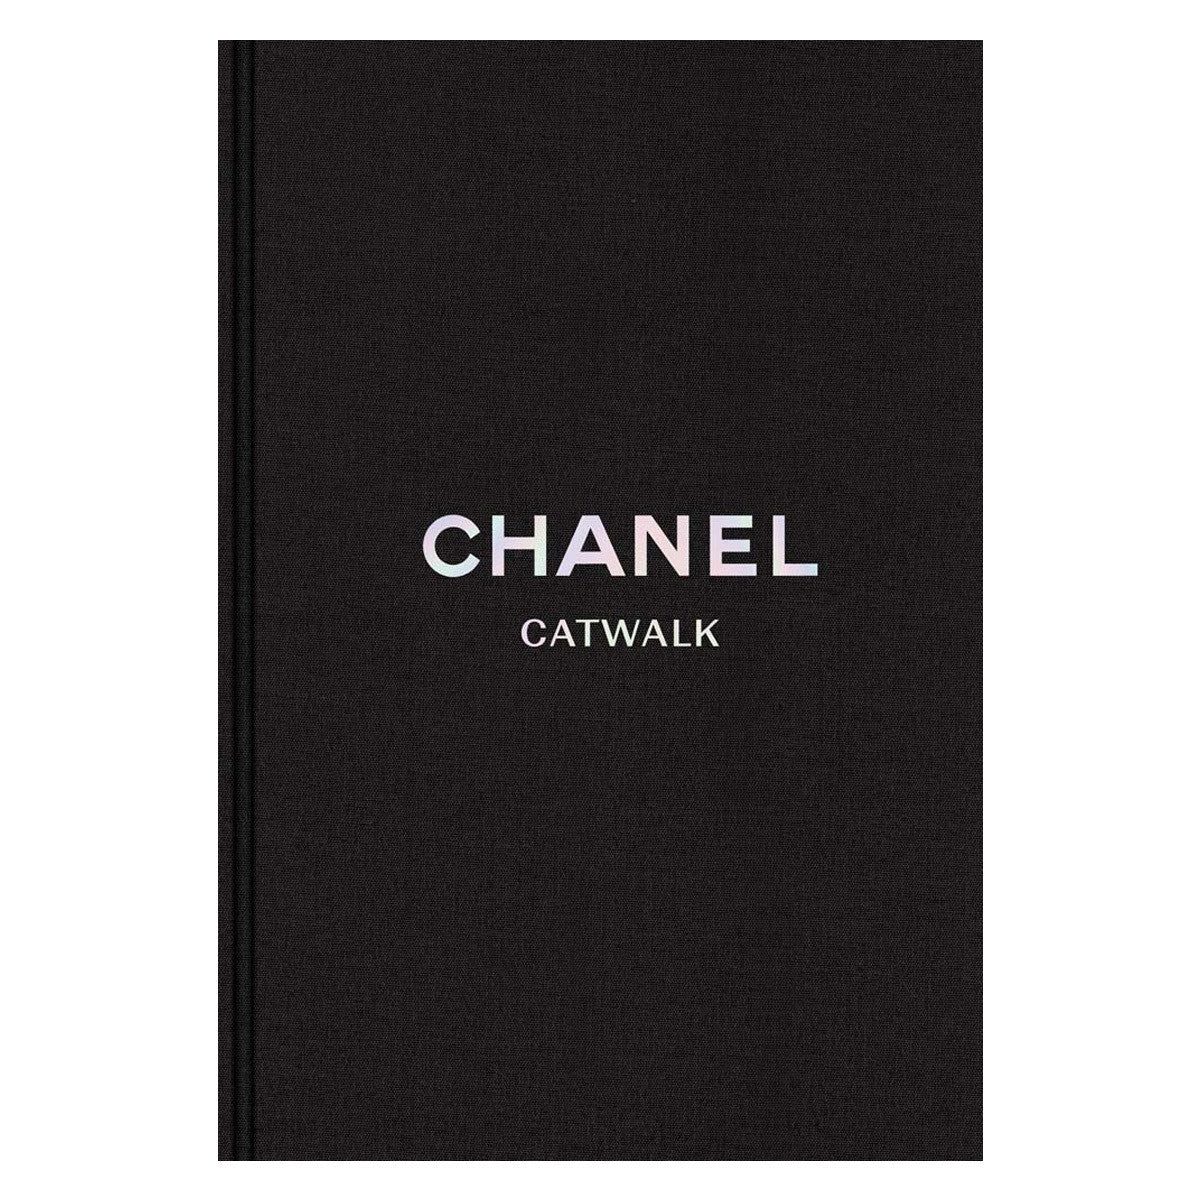 Chanel Catwalk by Mauries Patrick - Established for Design